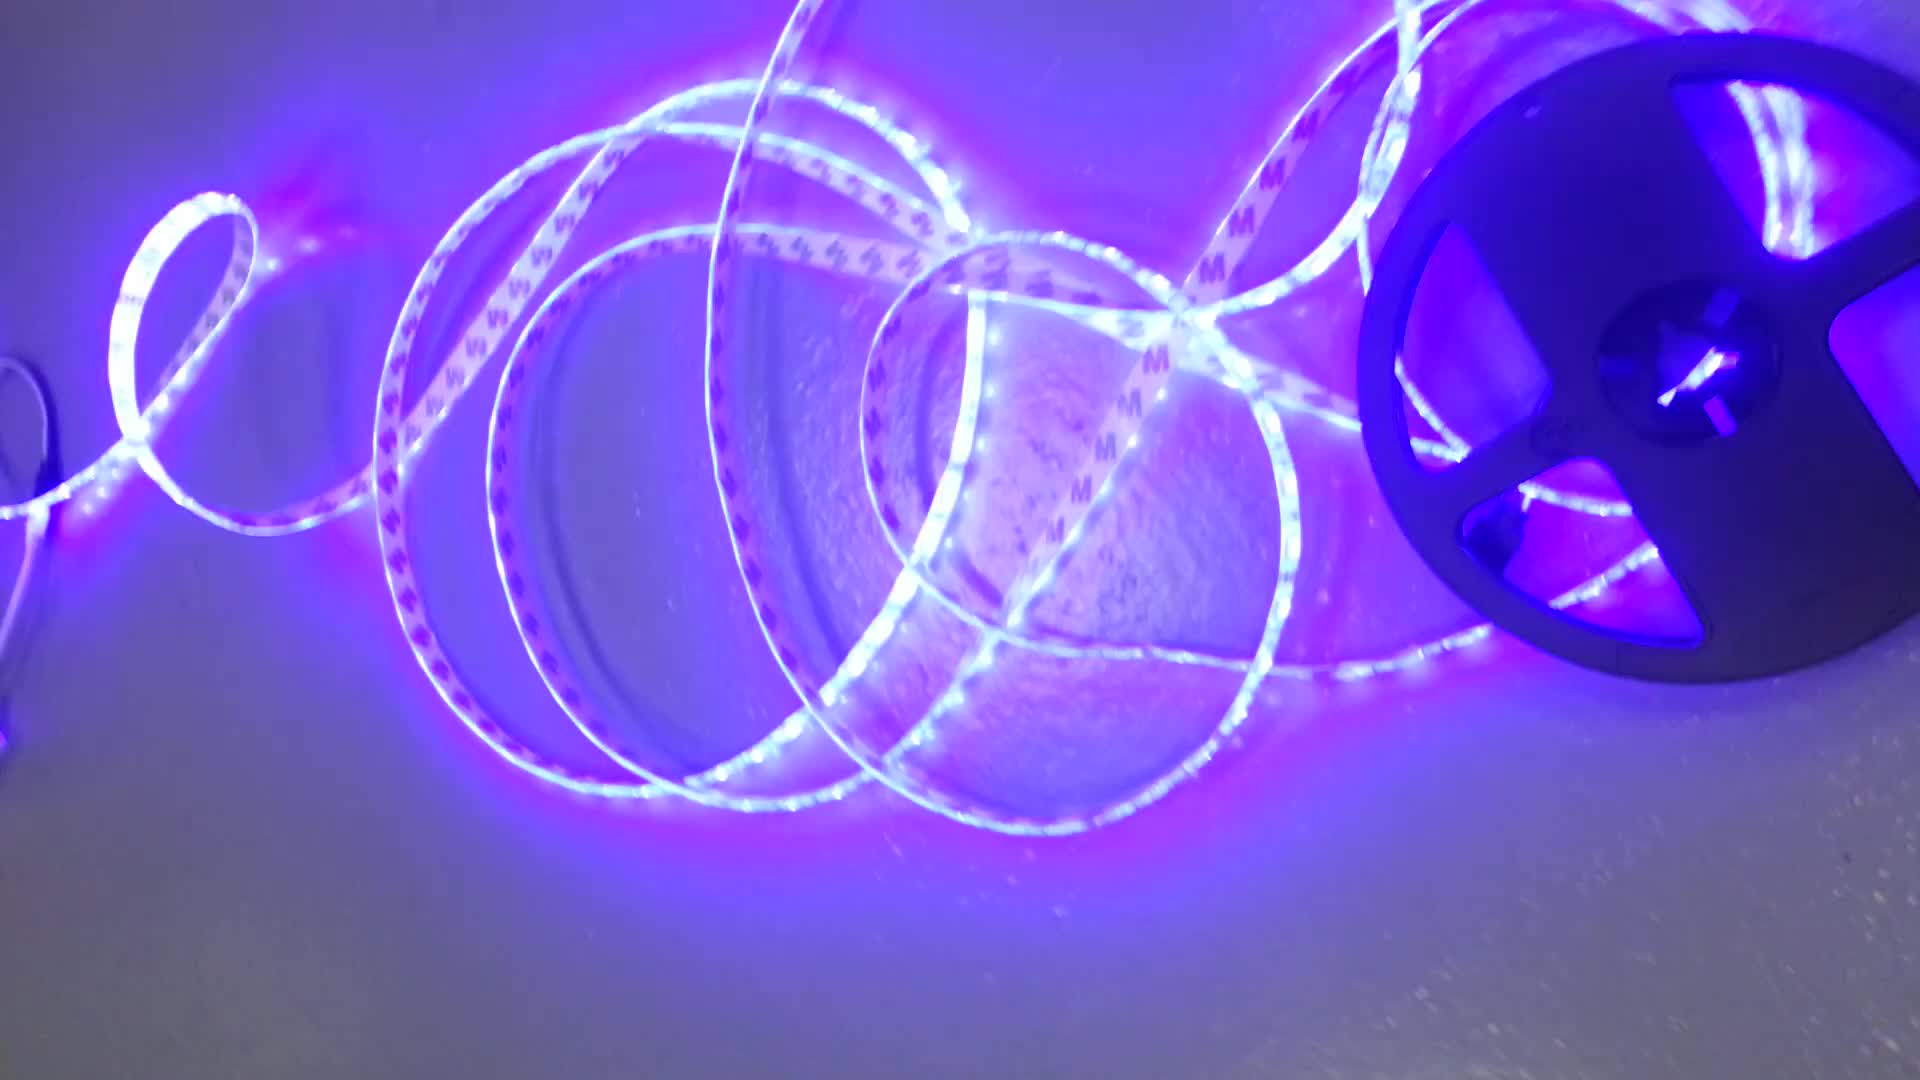 Wholesale 14.4W SMD 5050 double PCB waterproof RGB led strip light